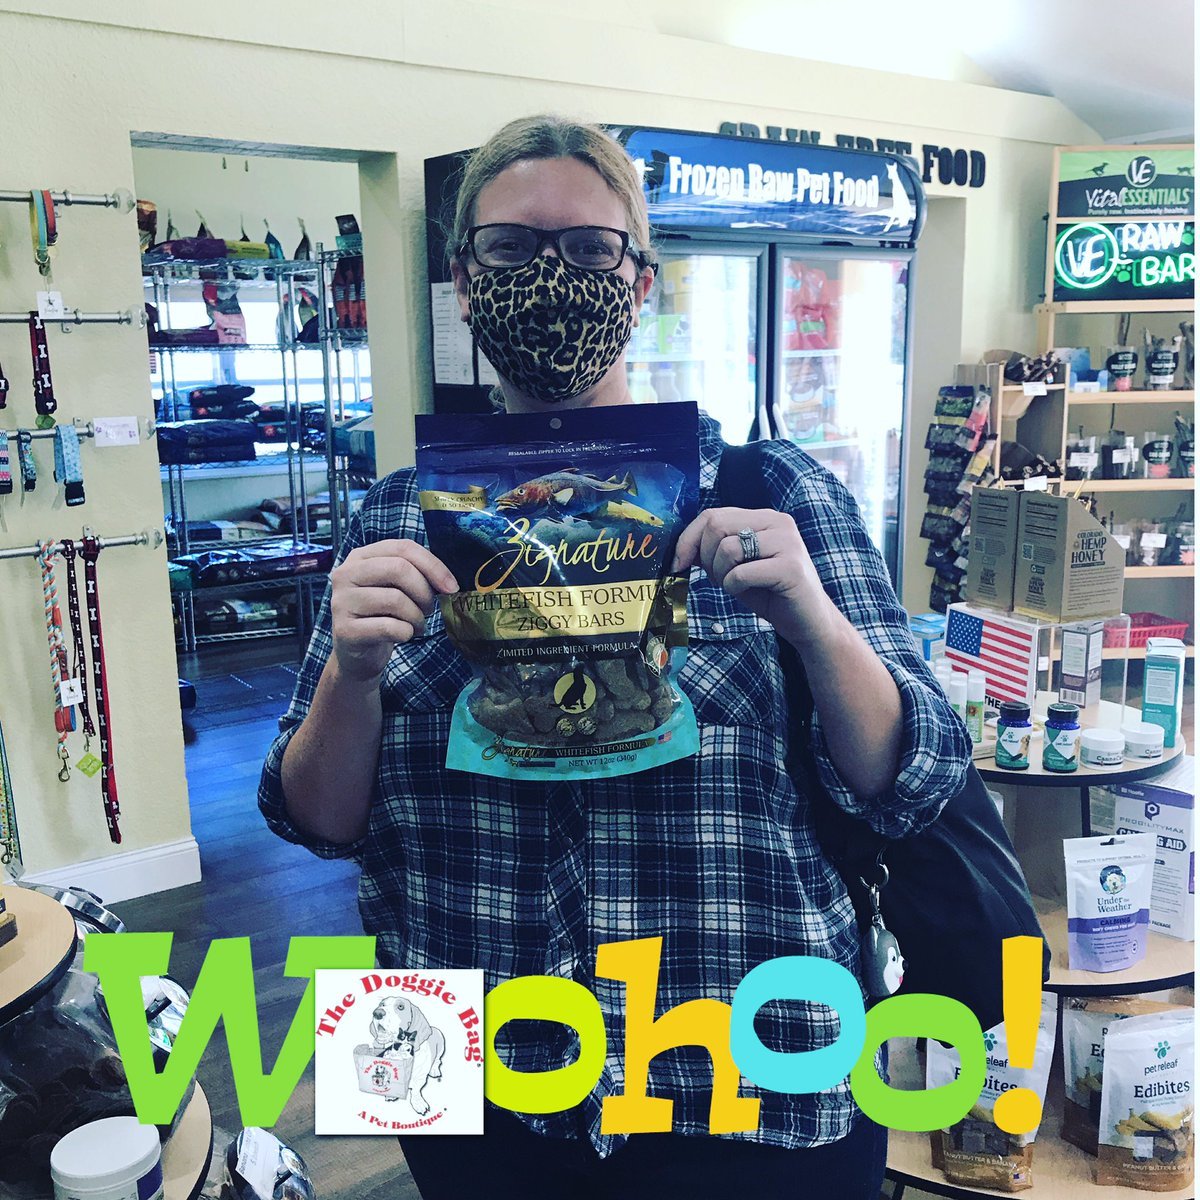 Winner! Winner!🥳 Congratulations Suzy, you're a #Winner just for being You on 'What's Your Name Wednesday' at The Doggie Bag!🎉 #whatsyourname #celebrate #dogtreats #dogs #cats #suzy #thedoggiebag #petboutique #happyplace #lakelandflorida #lakelandfl #dogmomsoflkld